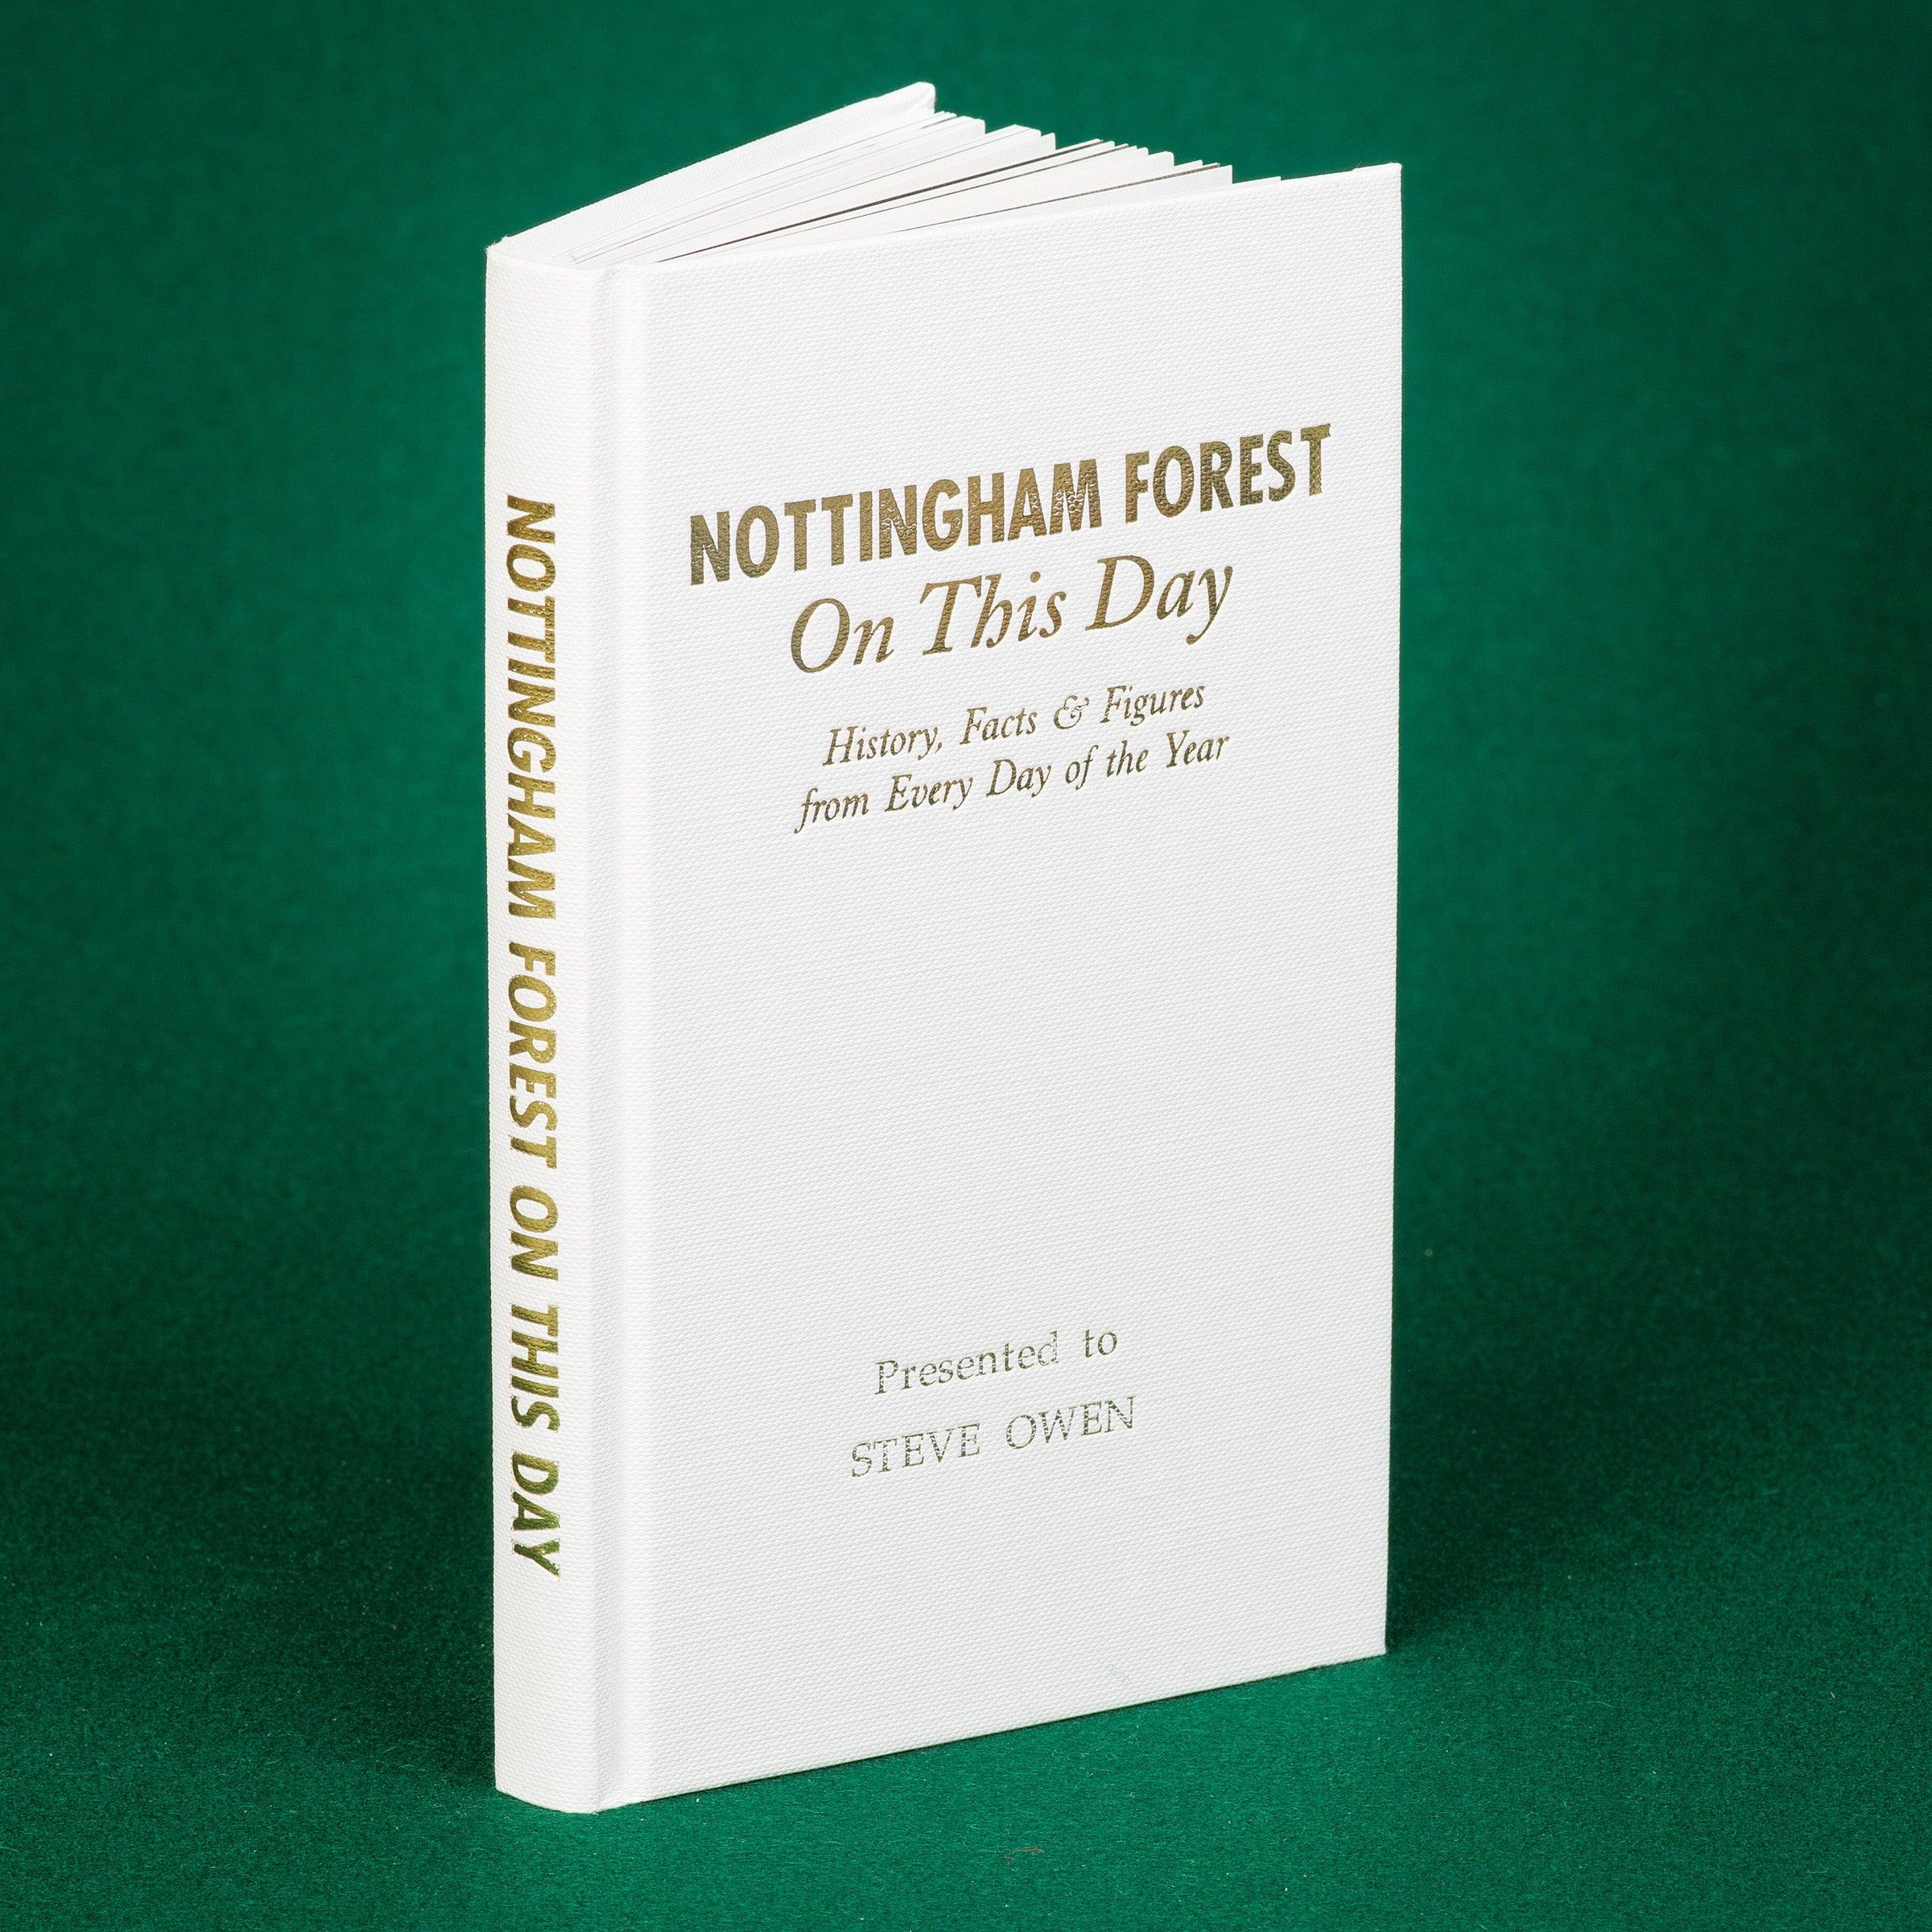 Personlised BookNottingham Forest On This Day History Gift Clough